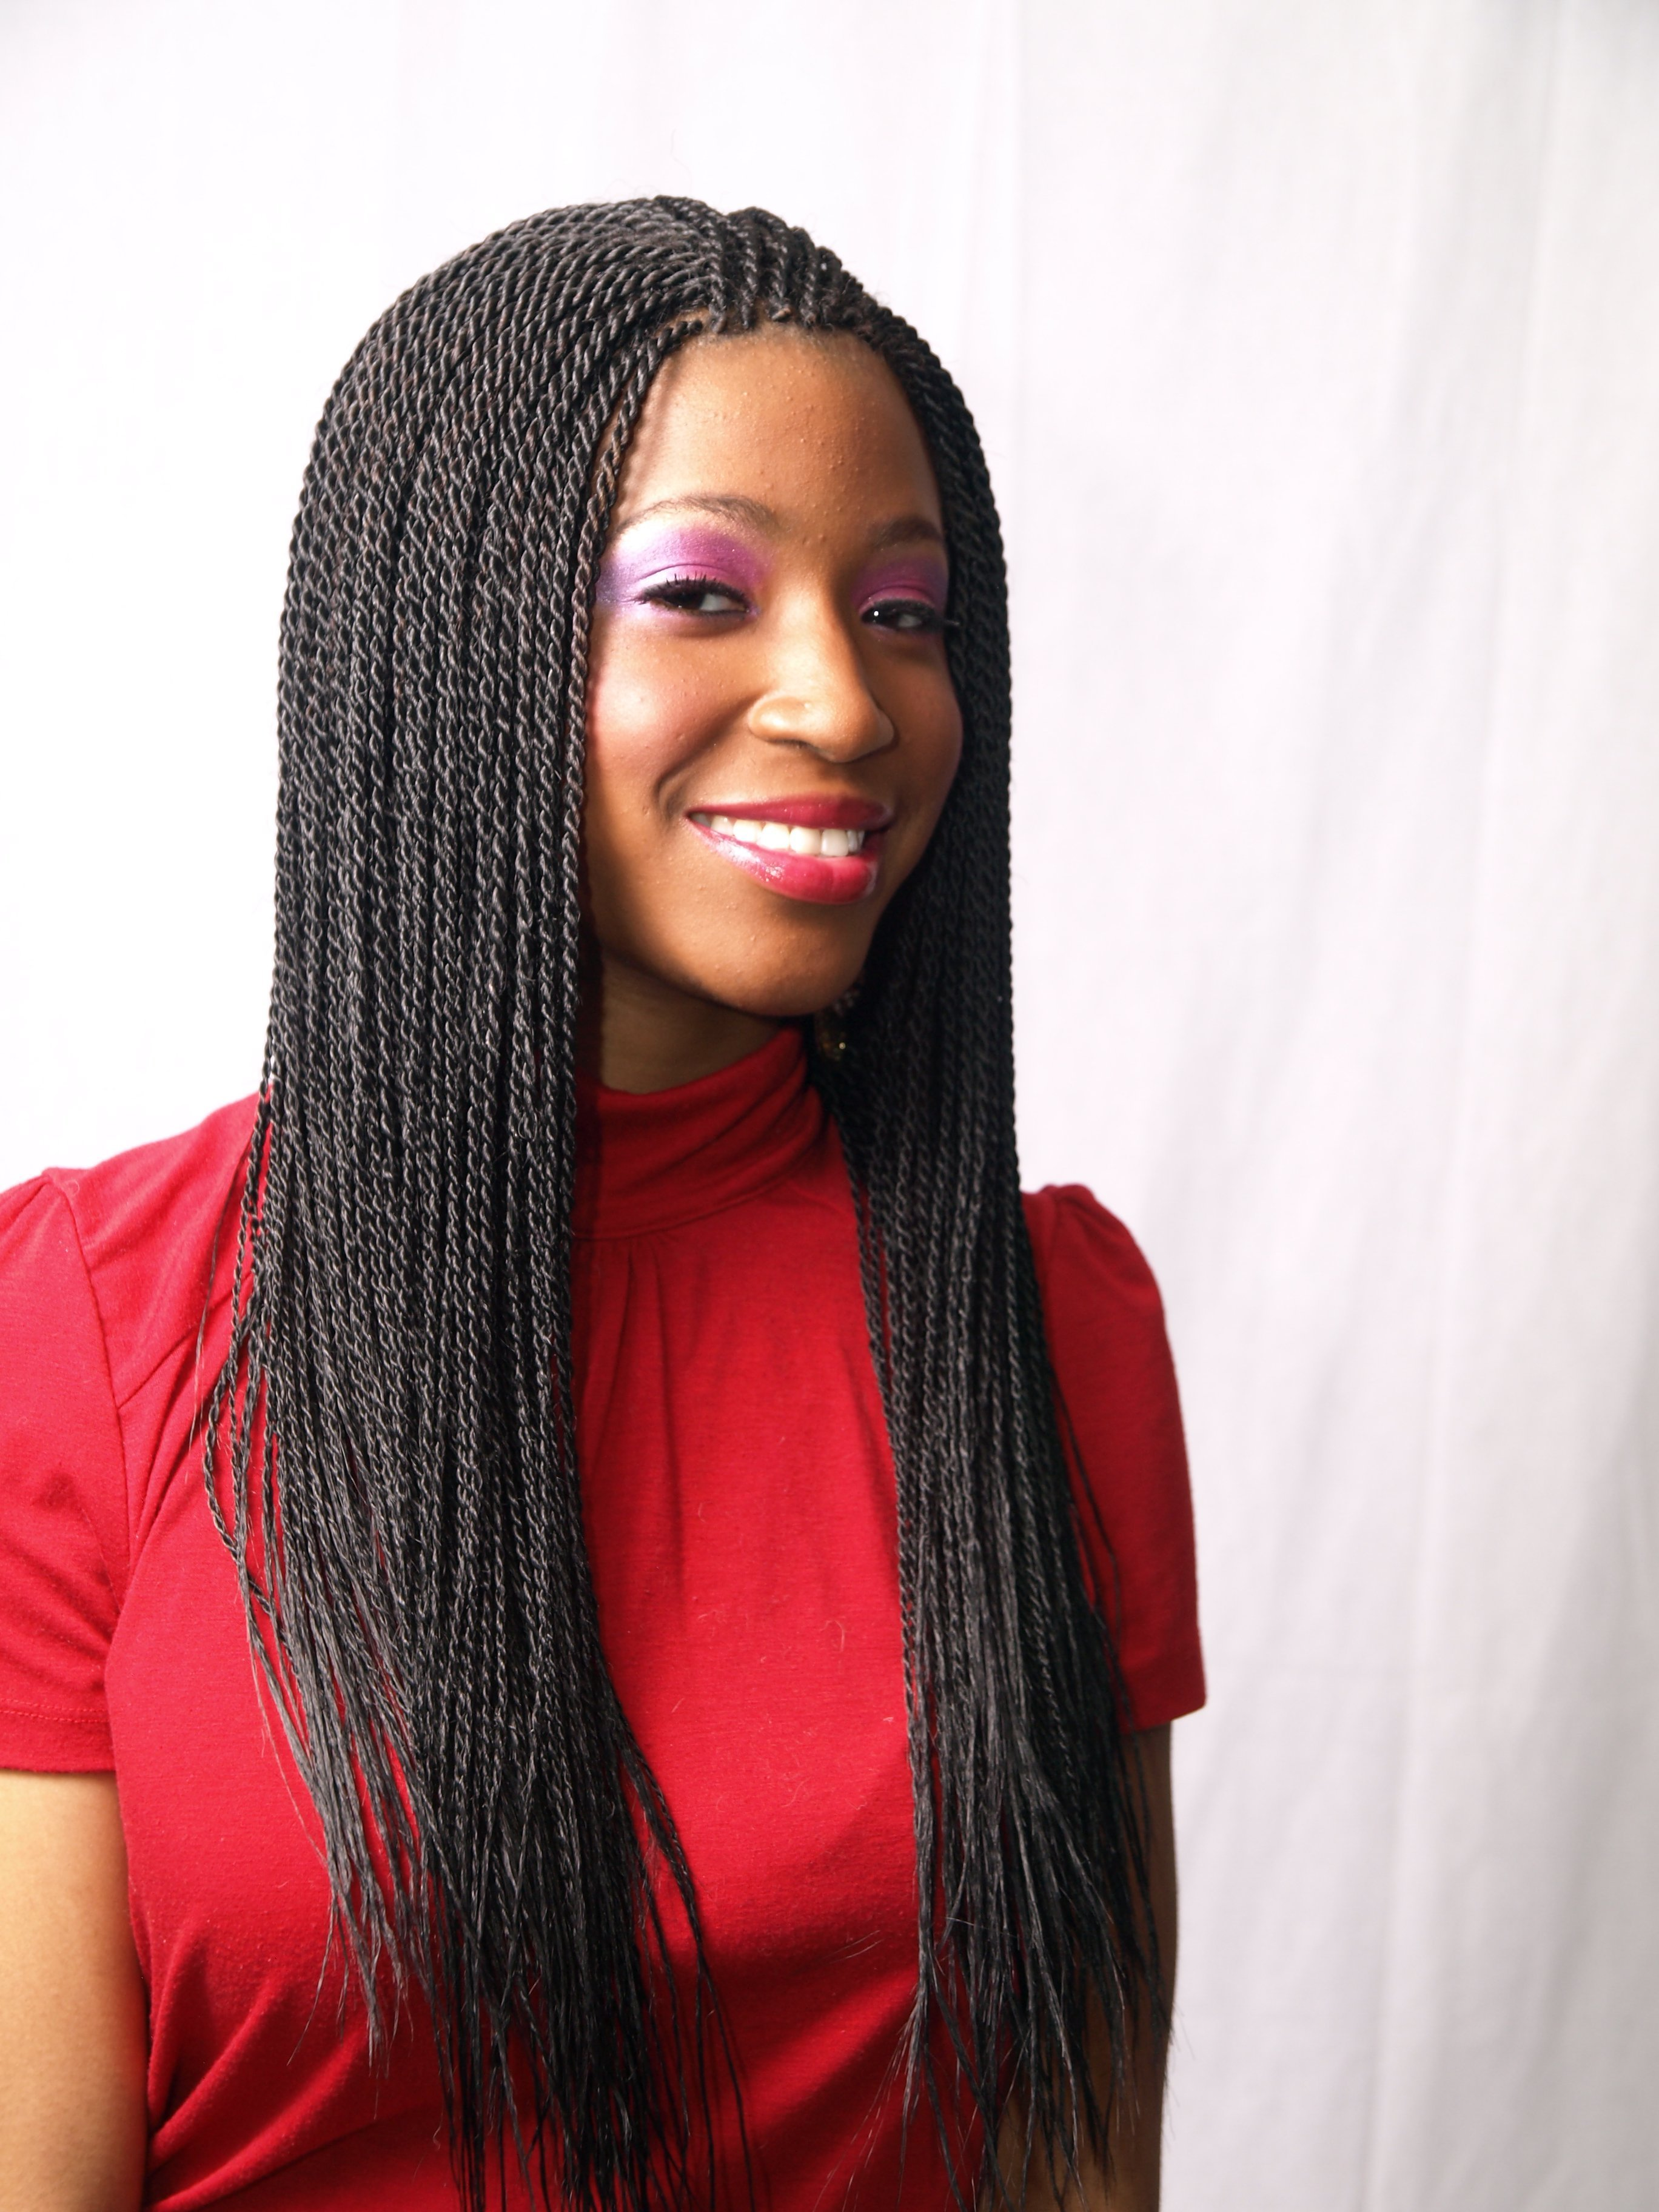 The Best Stunning And Quick Weave Hairstyles For Black Women Part 16 Pictures